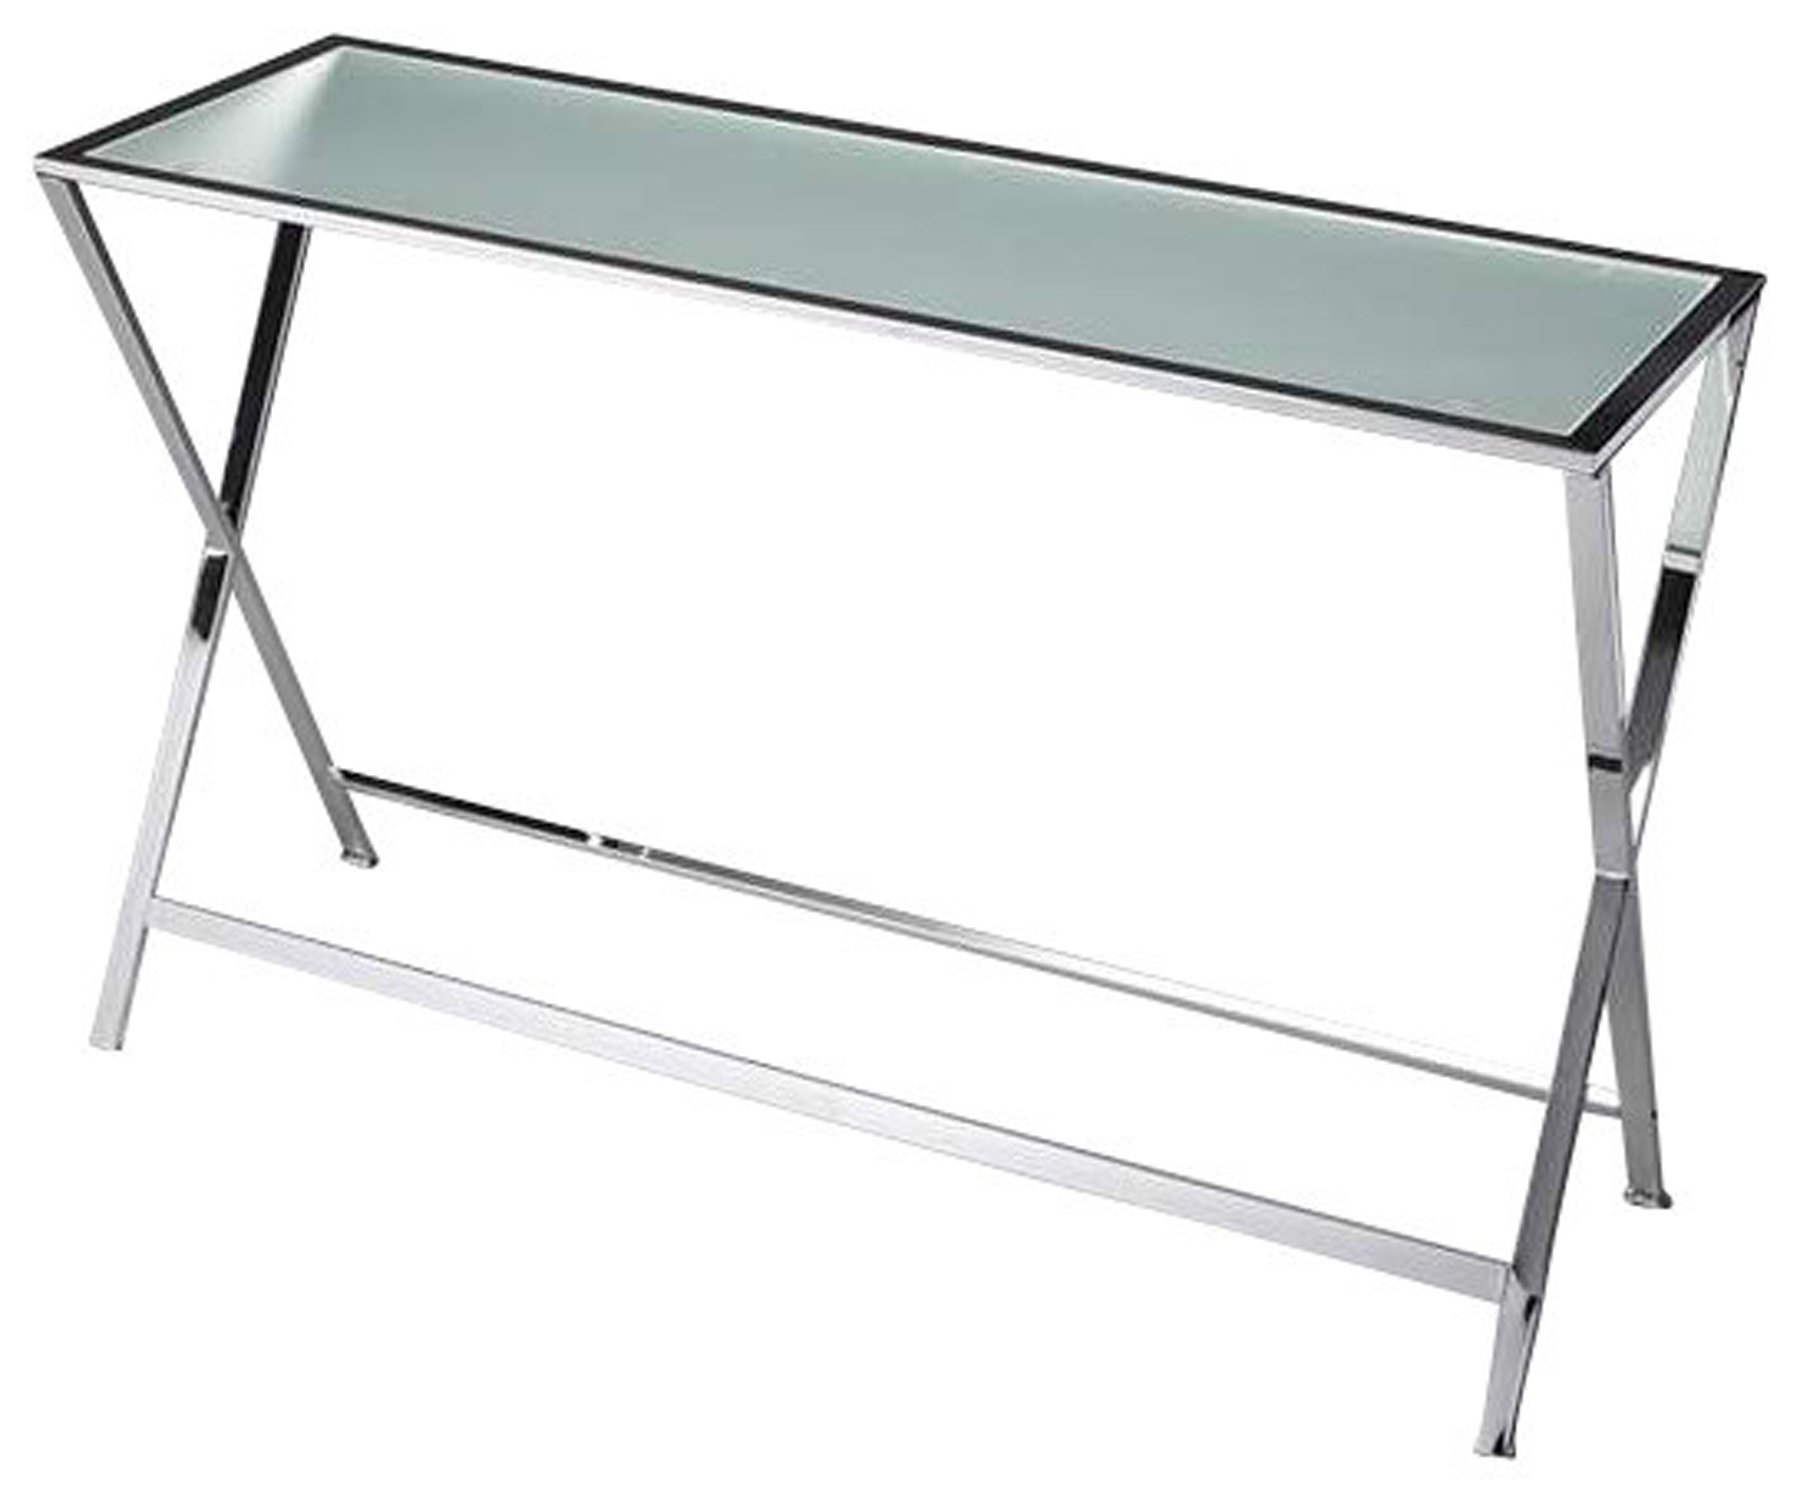 WOYBR 3290307 Console Table